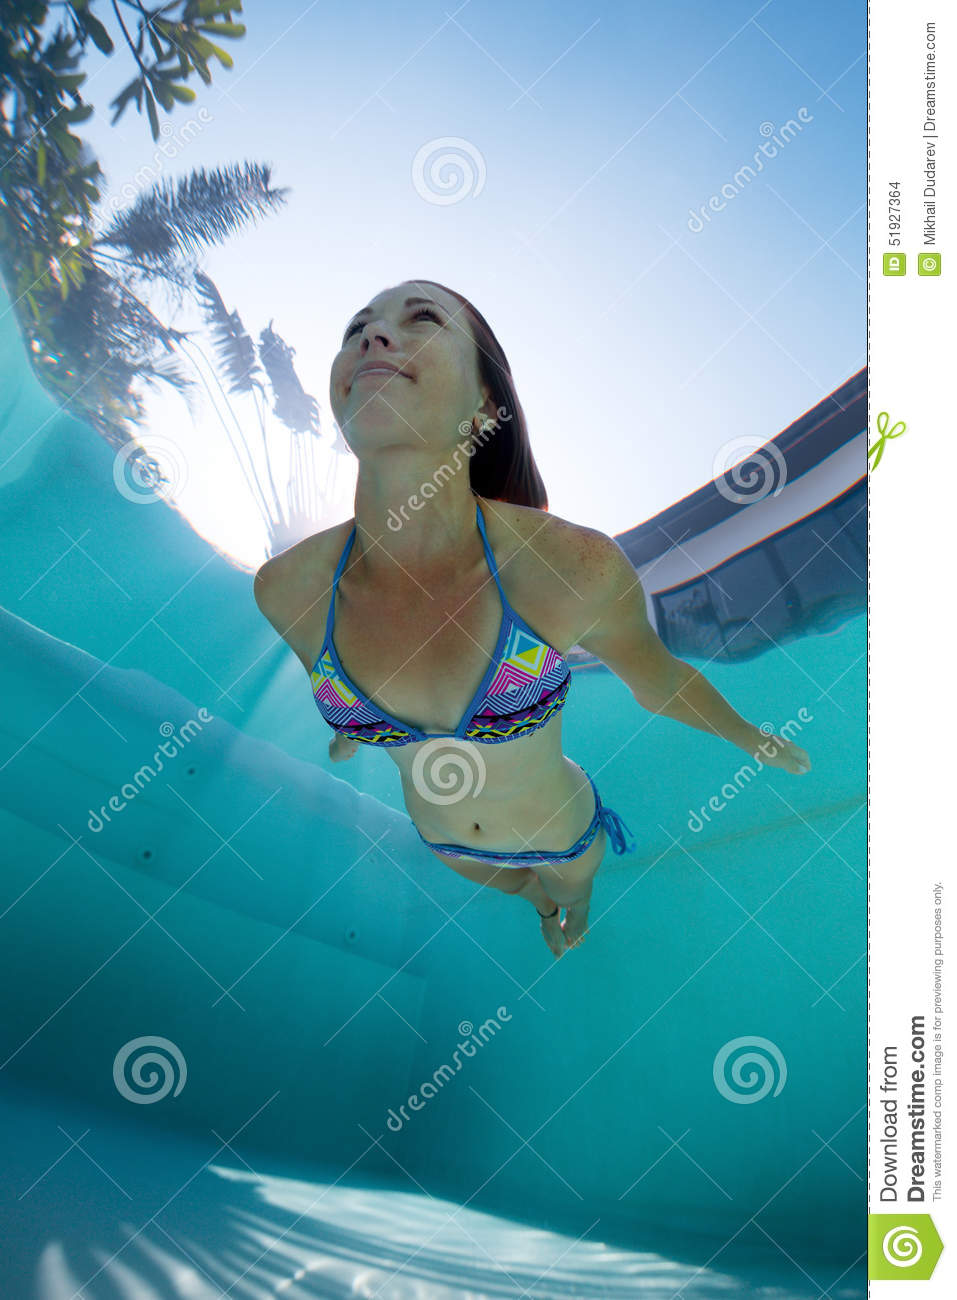 Young Lady Swimming Underwater Stock Photo - Image of dive, blue